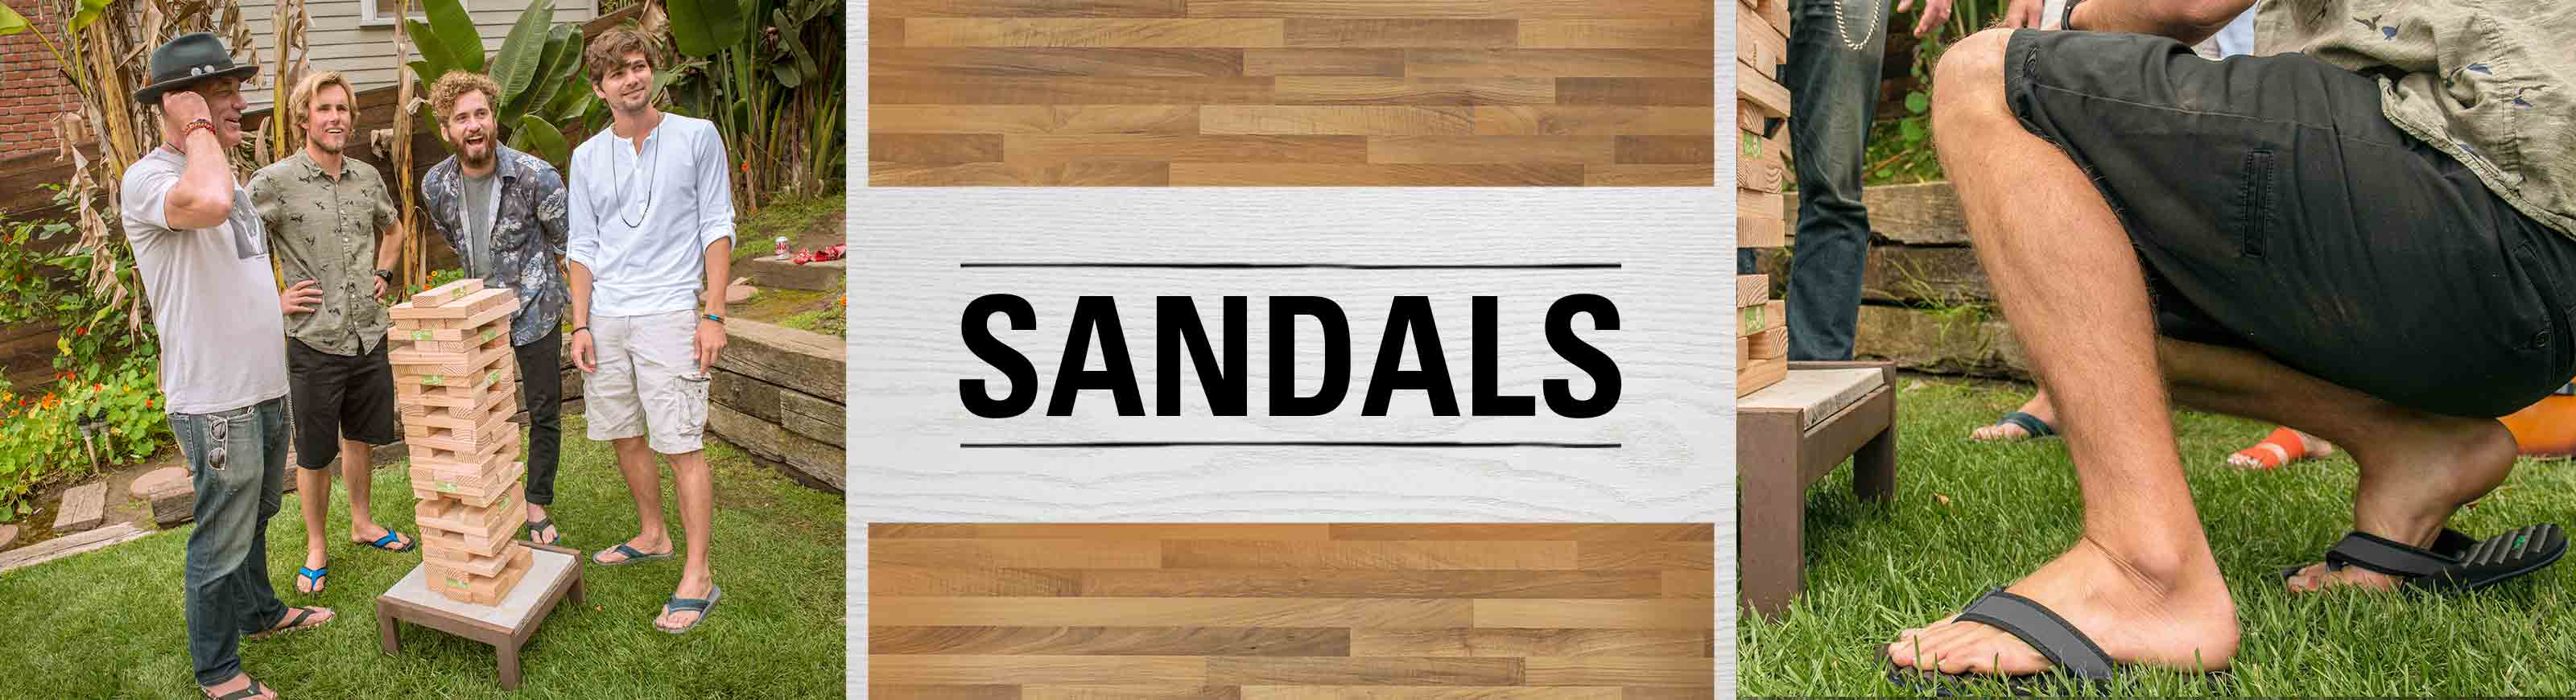 mens sandals category banner